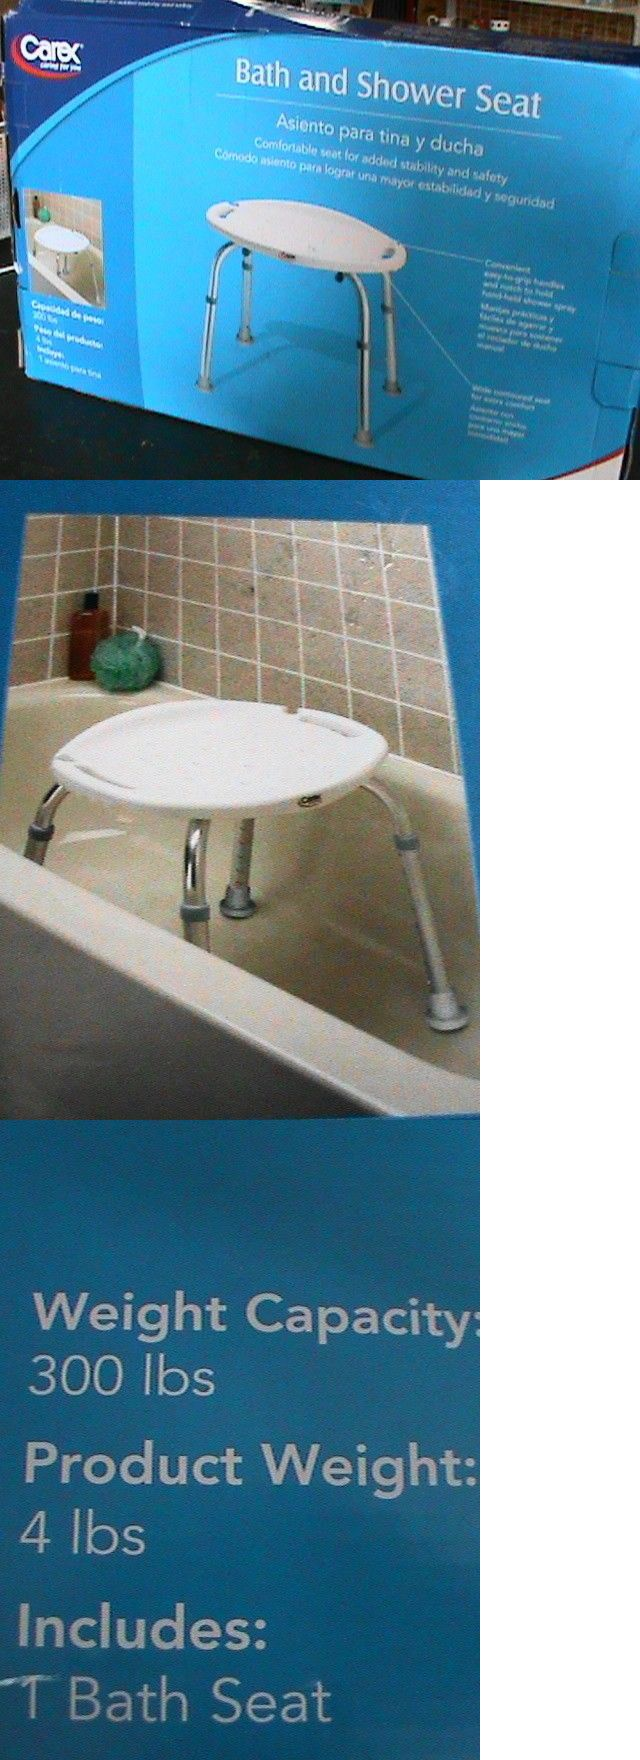 Carex Bath and Shower Seat-Adjustable Height. Easy to grip handles ...